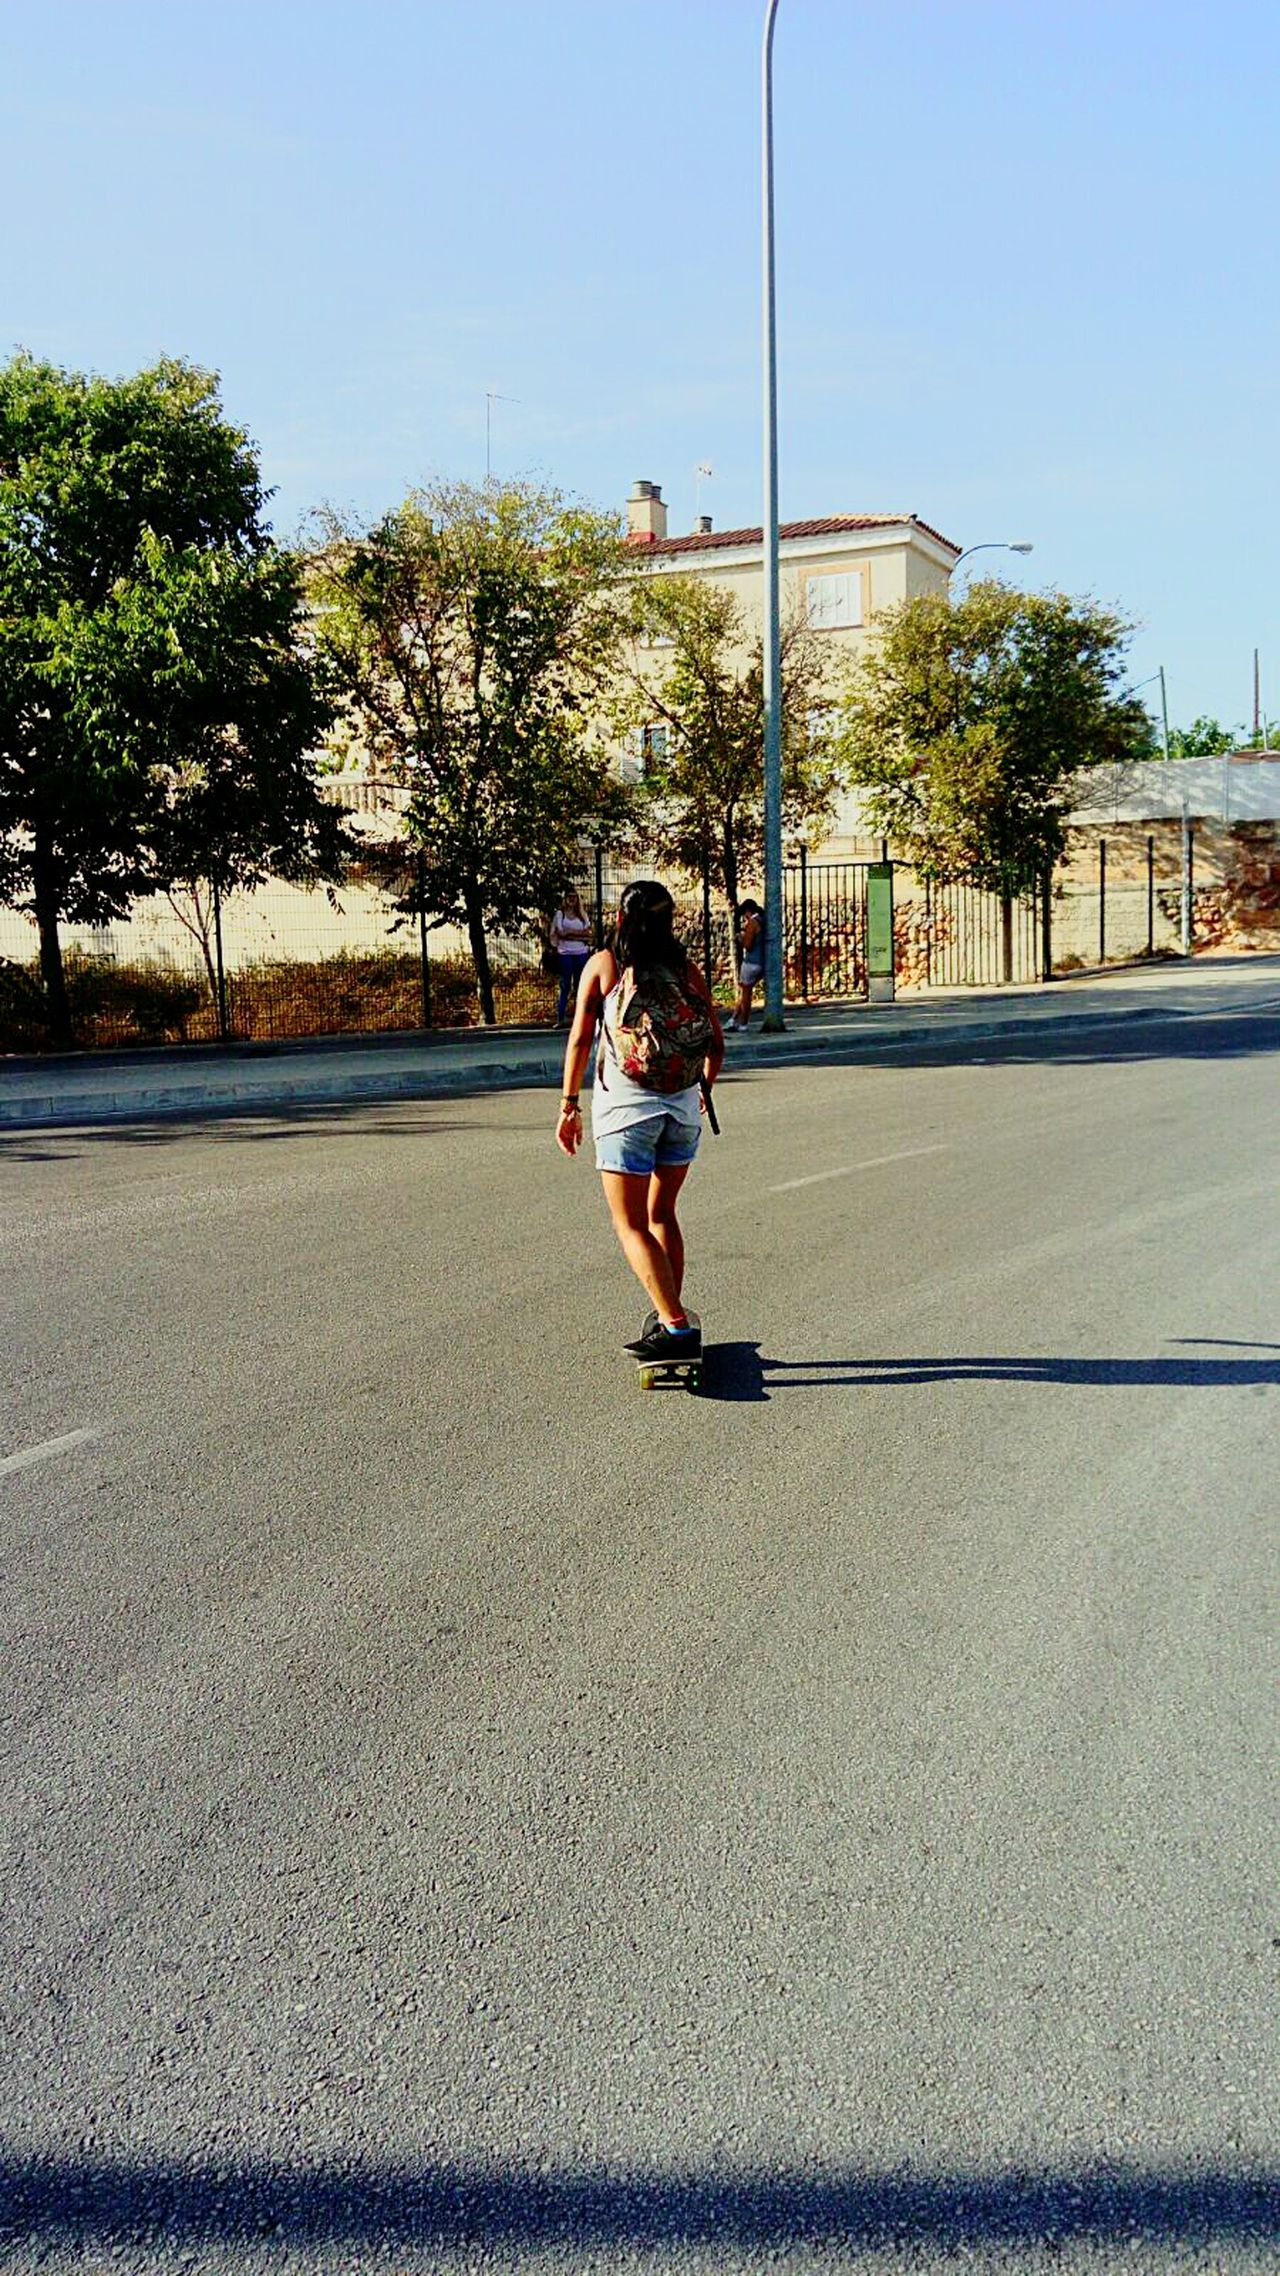 Skateboarding Funny Sk8orDie Skater Girl Full Length Tree Walking Casual Clothing Leisure Activity Lifestyles Shadow Skateboarding Road Clear Sky Day Sunny Sky Enjoyment Person Outdoors Young Adult Blue First Eyeem Photo